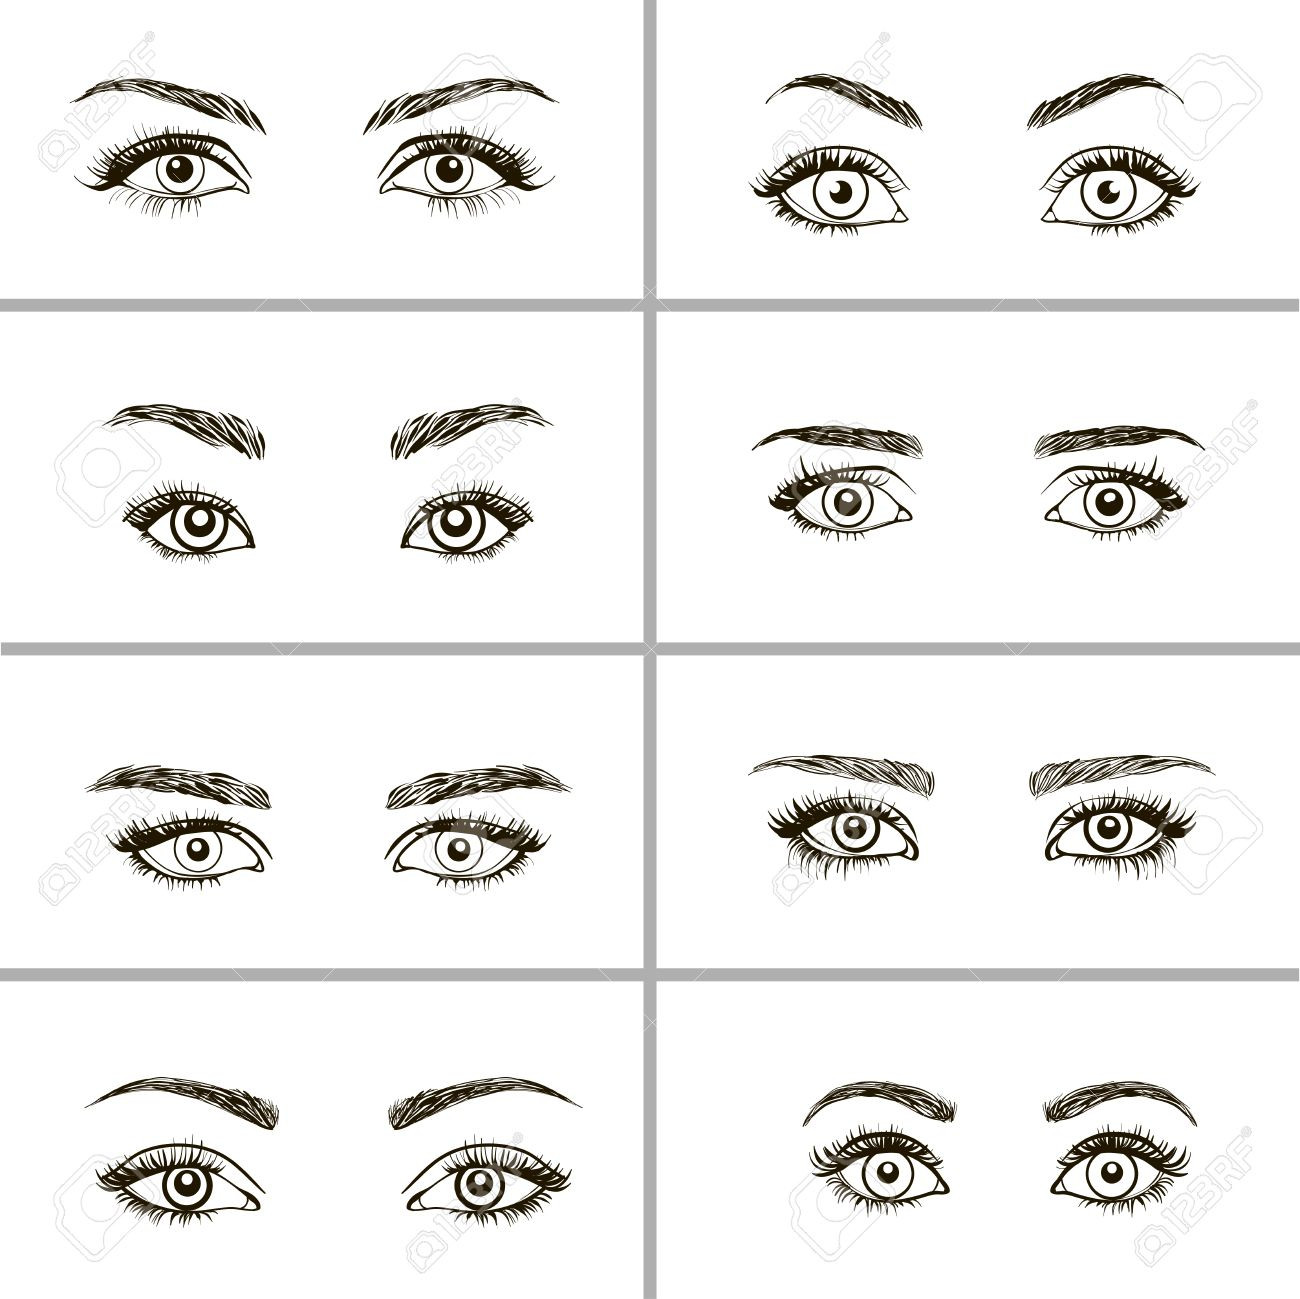 Makeup for different eye types